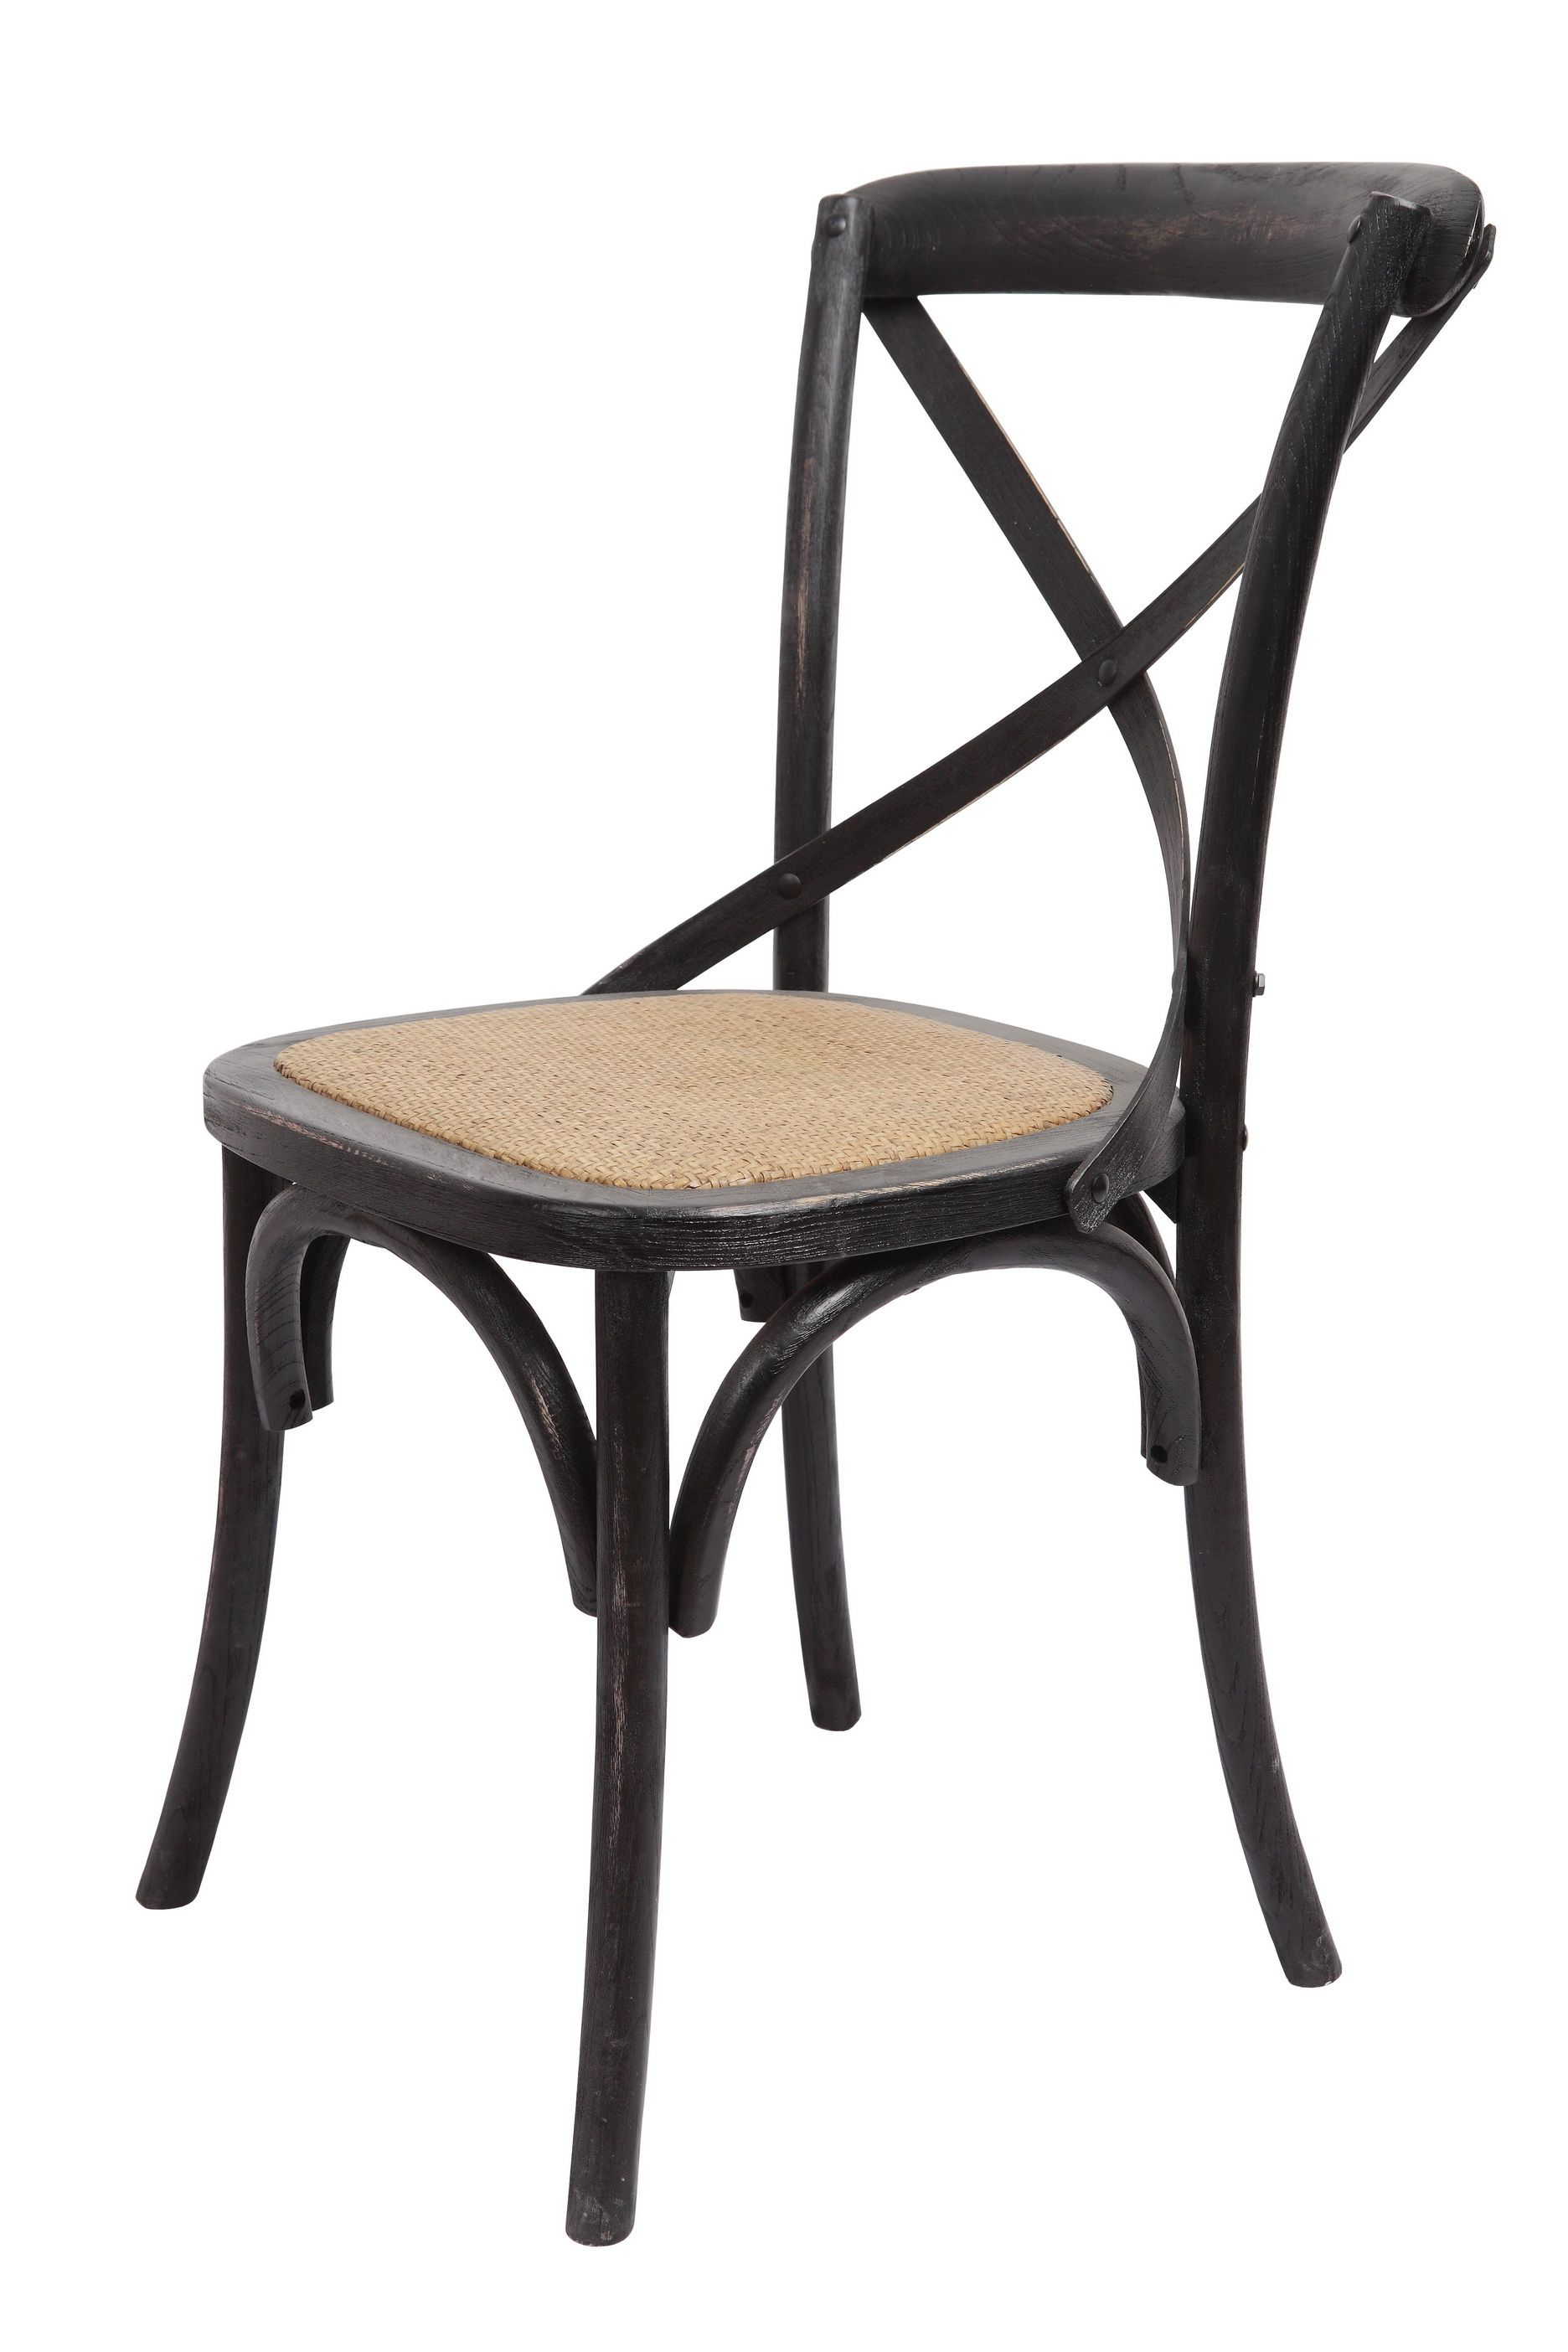 brody xback chair in black wash by forty west designs http